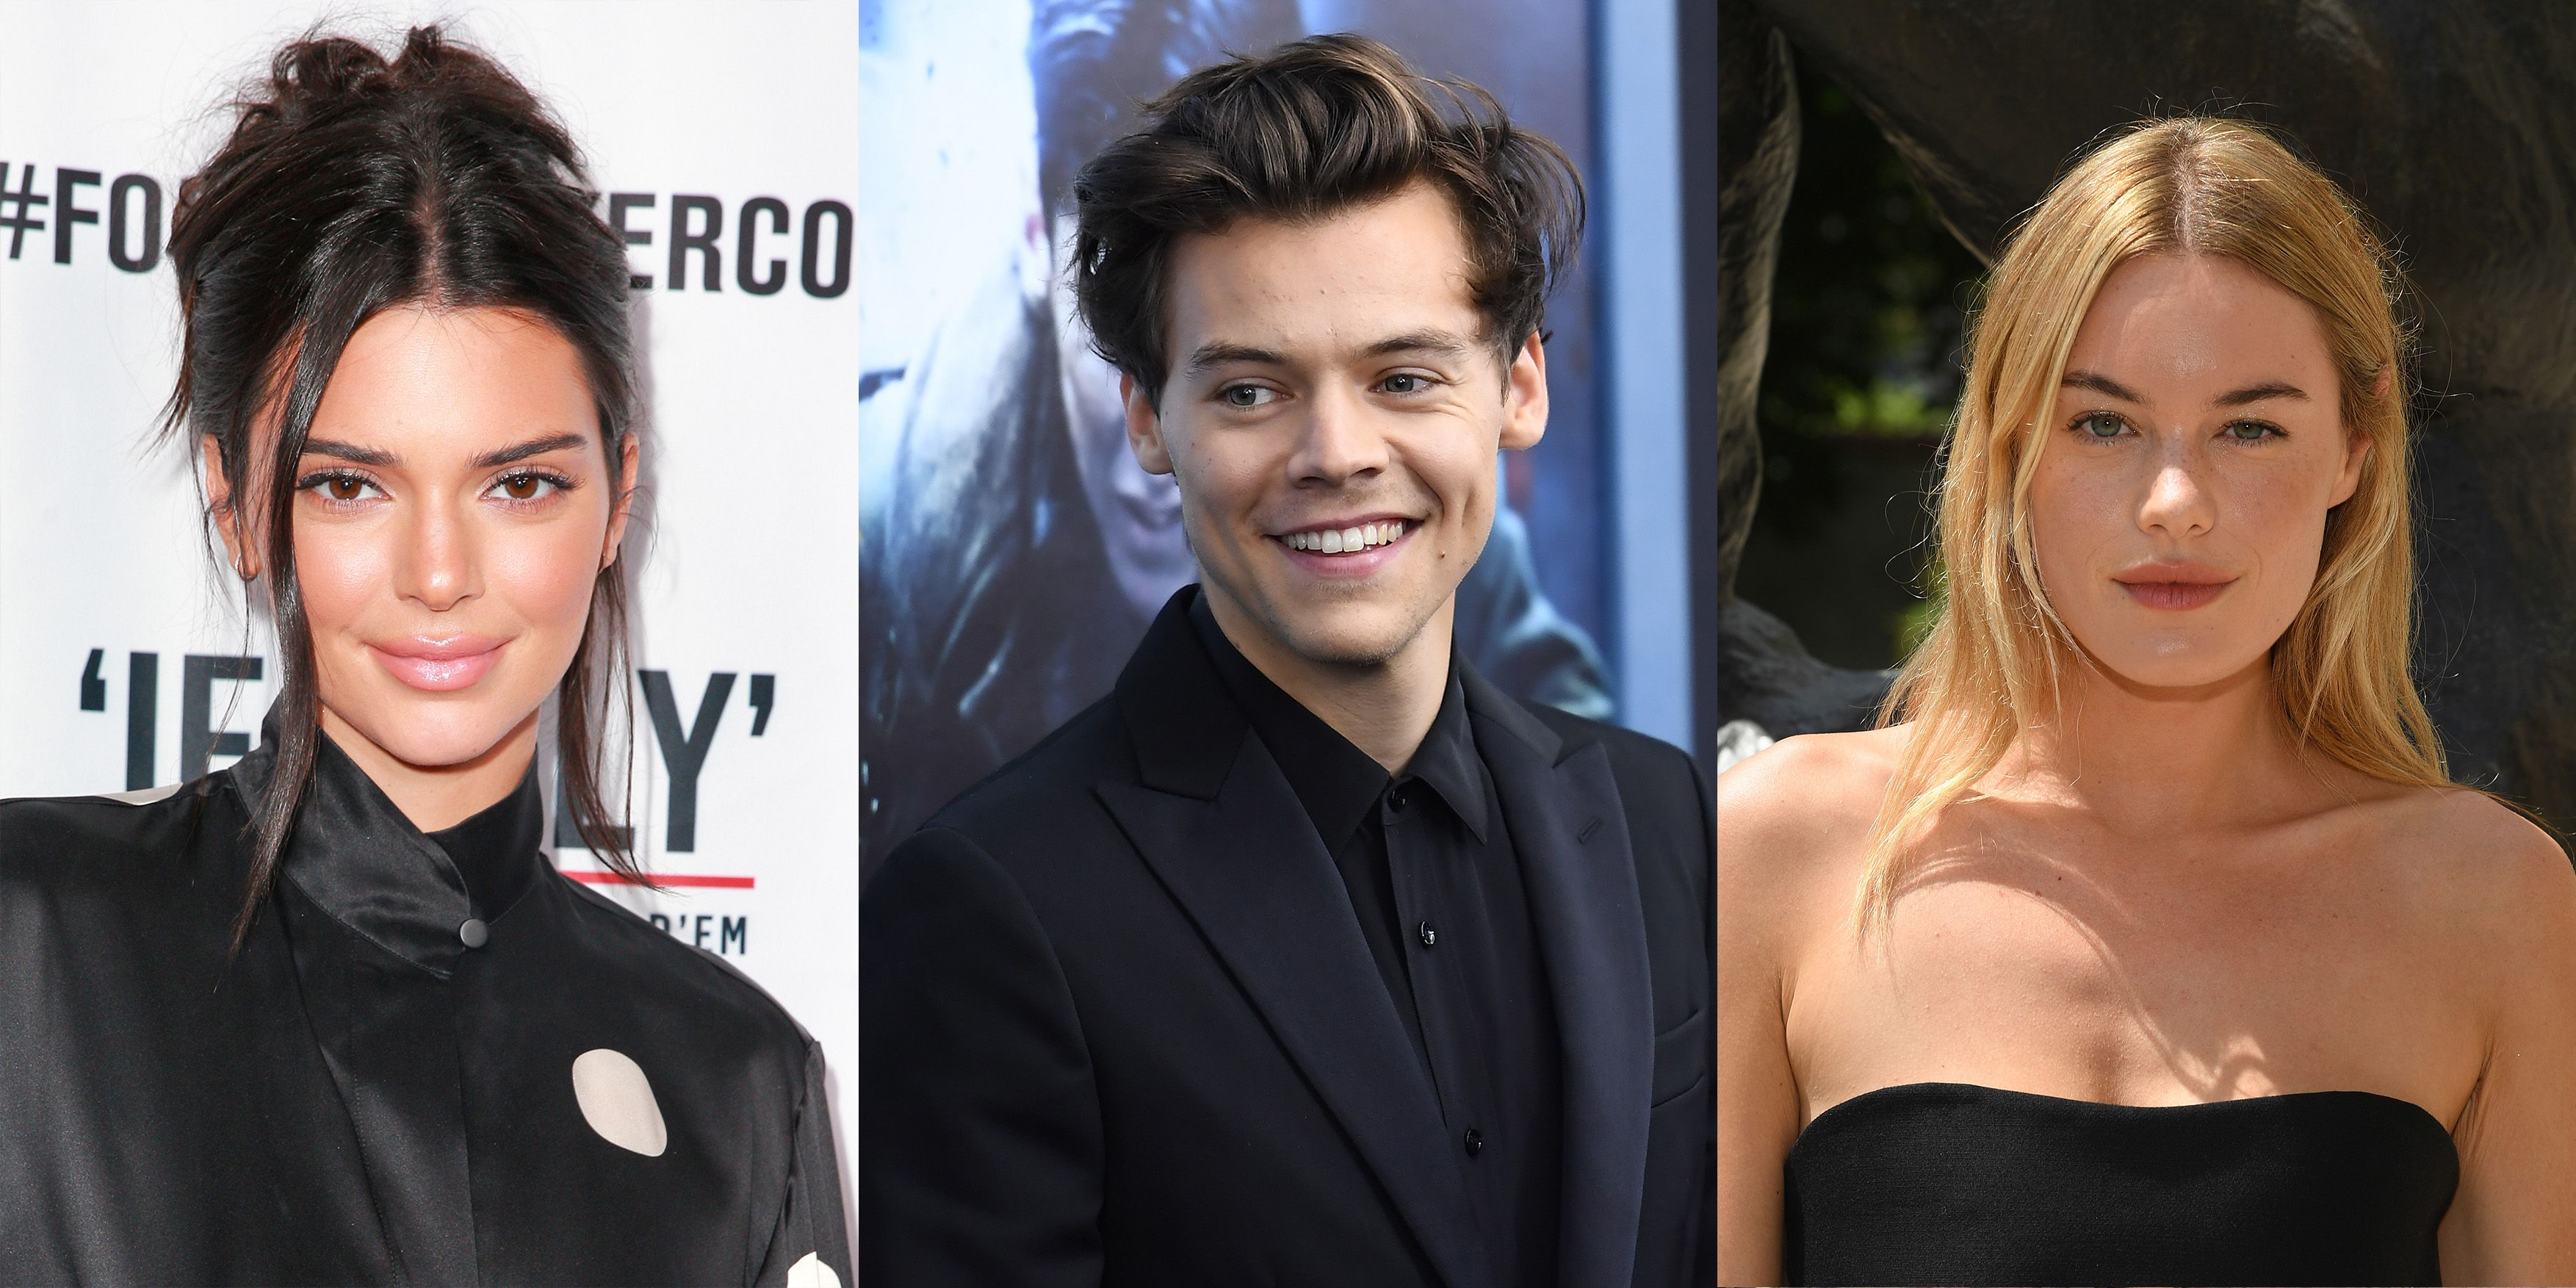 Are caggie and harry dating speech